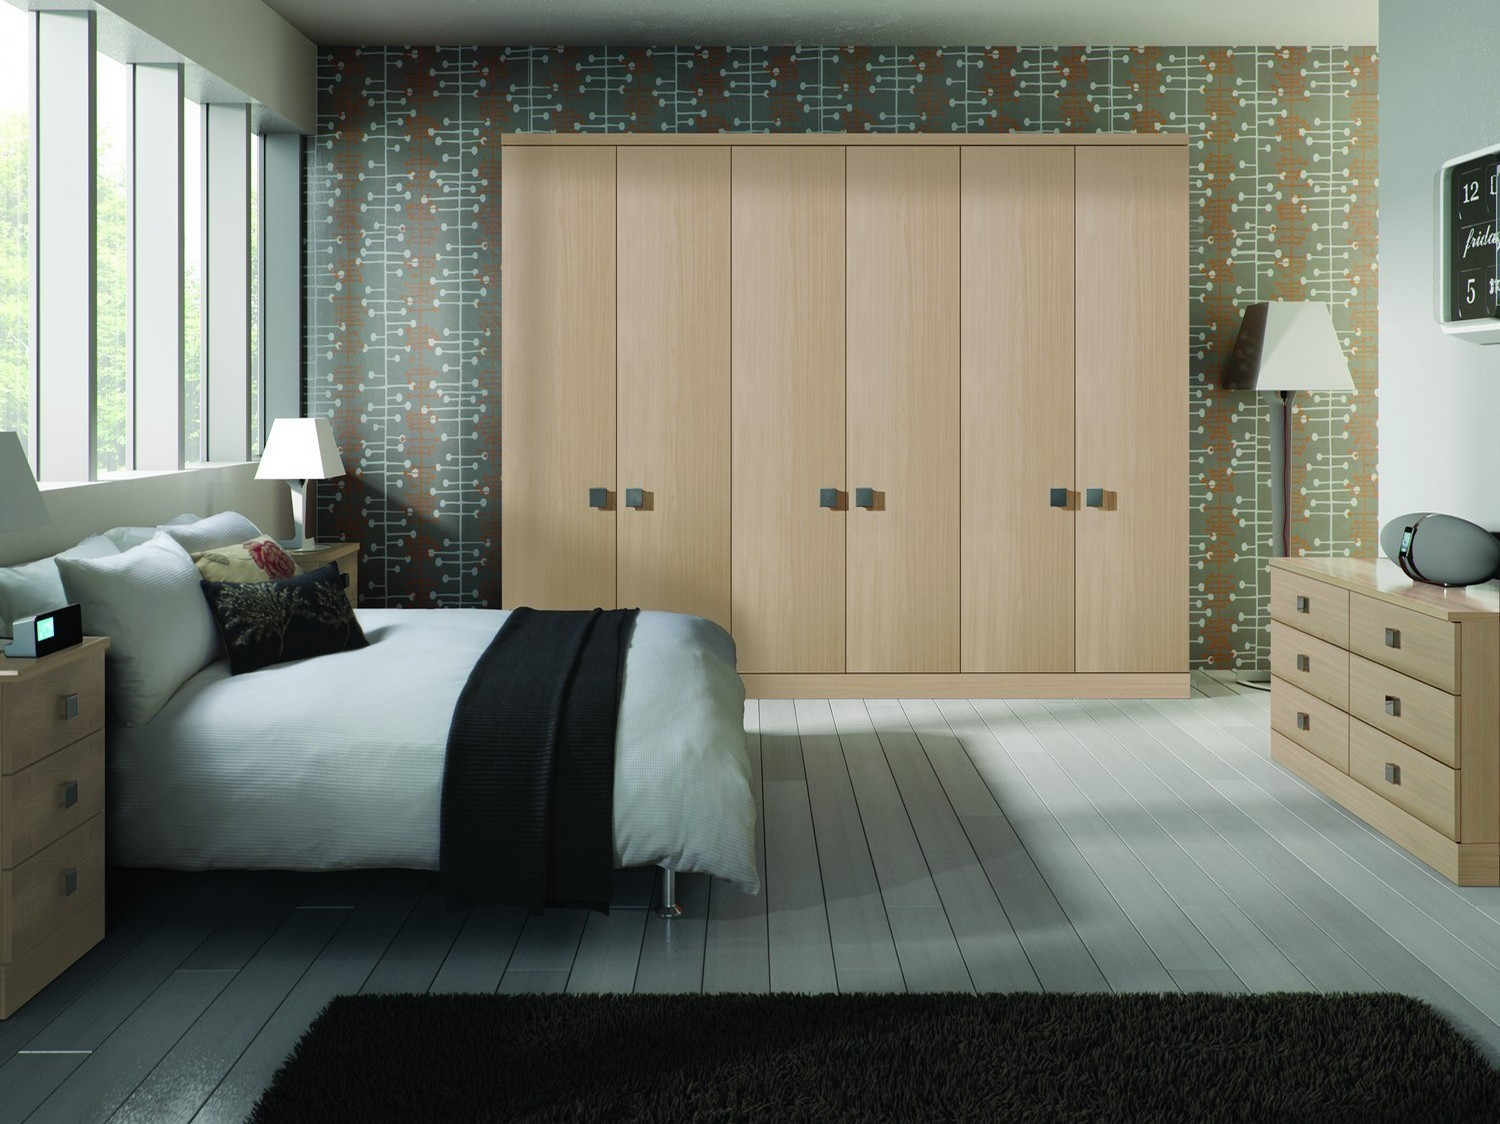 Oak style fitted bedrooms furniture Liverpool designed for our client in Liverpool city centre, including three double wardrobes, a large set of Chester draws and a bedside cabinet. Fitted with a large square chrome handle selected by our client (all of our fitted bedroom furniture can be supplied with a range of handles).